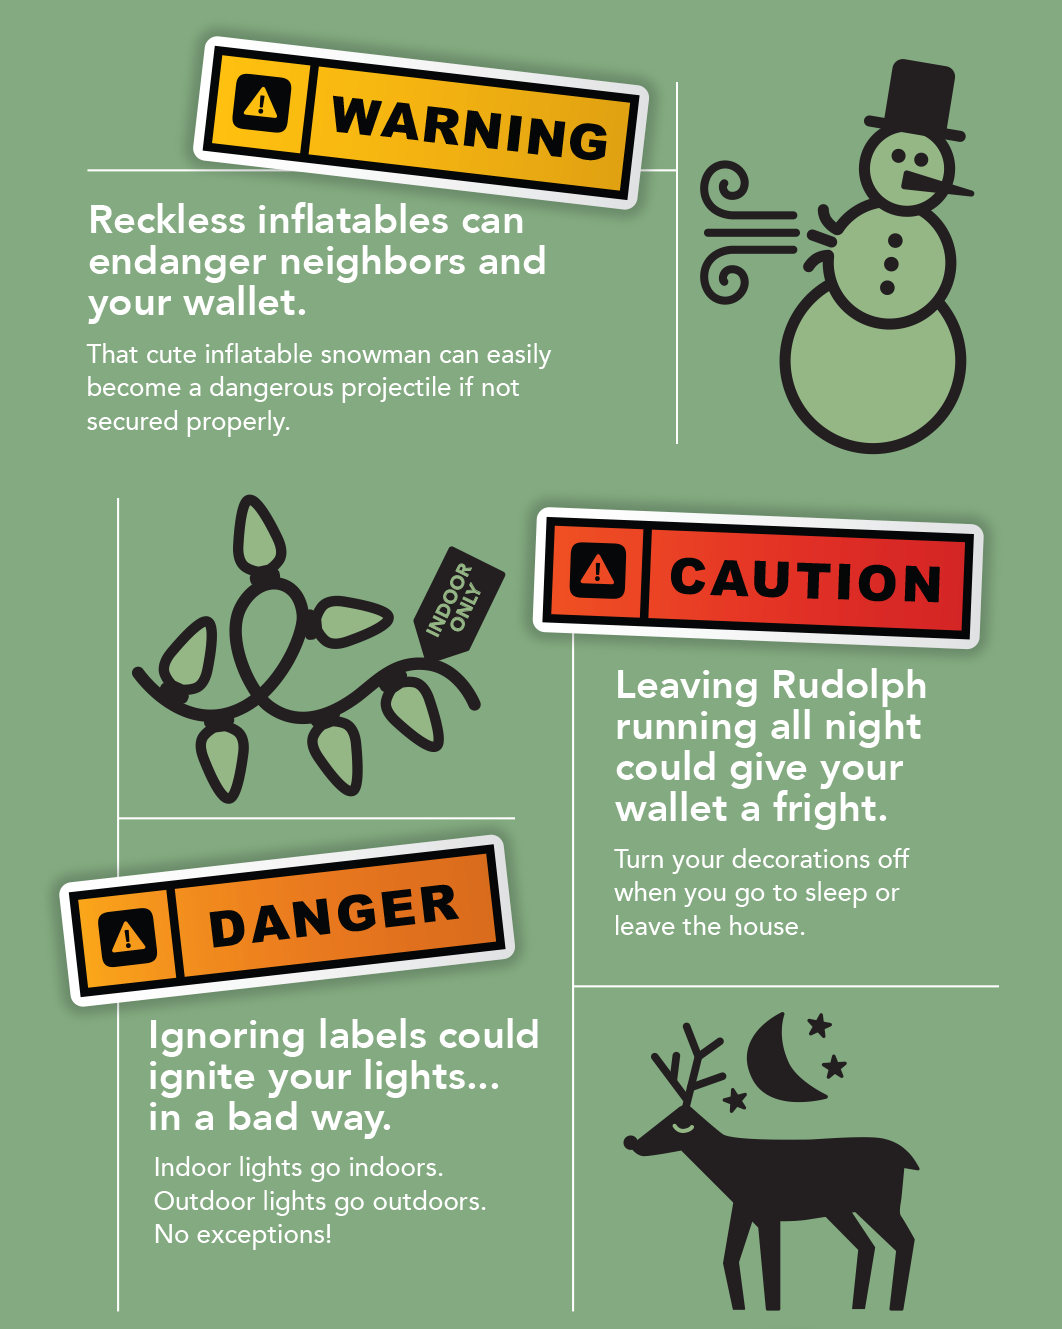 Number 6 Warning: Reckless inflatables can endanger neighbors and your wallet. That cute inflatable snowman can easily become a dangerous projectile if not secured properly. Number 7 Caution: Leaving Rudolph running all night could give your wallet a fright. Turn your decorations off when you go to sleep or leave the house. Number 7 Danger: Ignoring labels could ignite your lights in a bad way. Indoor lights go indoors. Outdoor lights go outdoors. No exceptions.